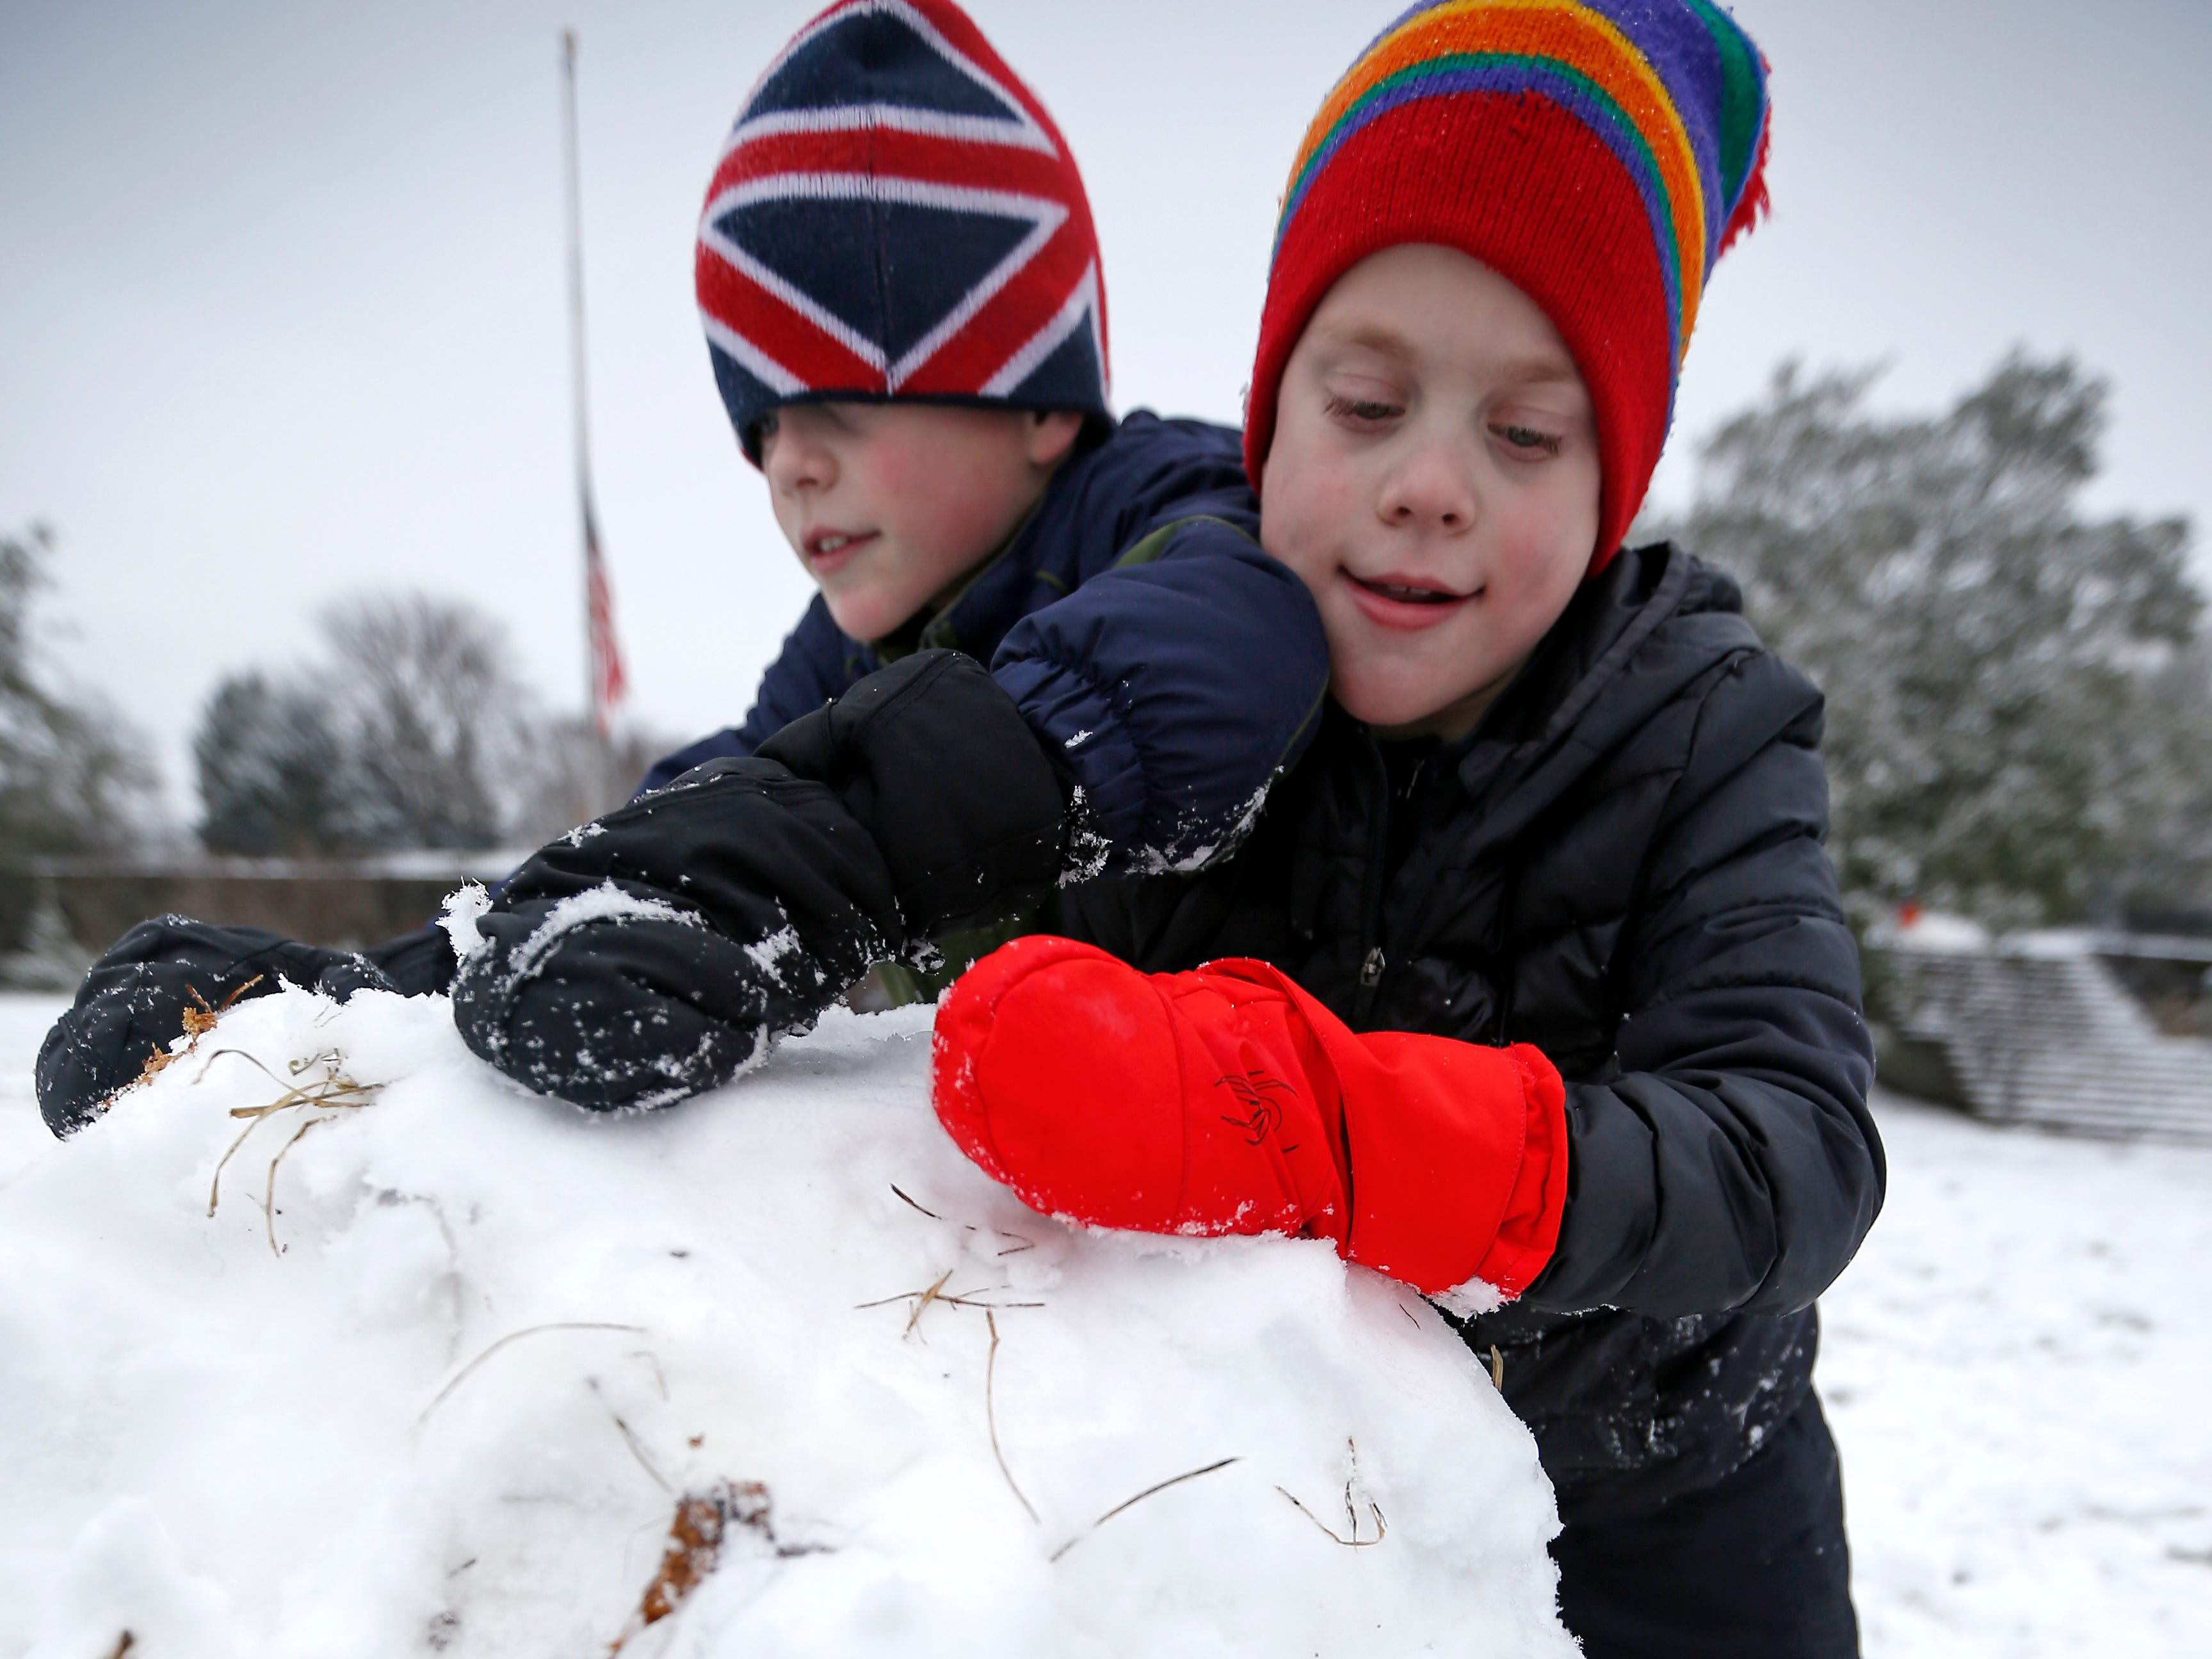 Twin brothers Bret and CJ Gash, 8, of Mt. Lookout roll the bottom section of a snowman at Ault Park in the Hyde Park neighborhood of Cincinnati on Saturday, Jan. 12, 2019. A winter storm warning remained in effect until 7 a.m. Sunday after the region experienced the first snowfall of 2019.